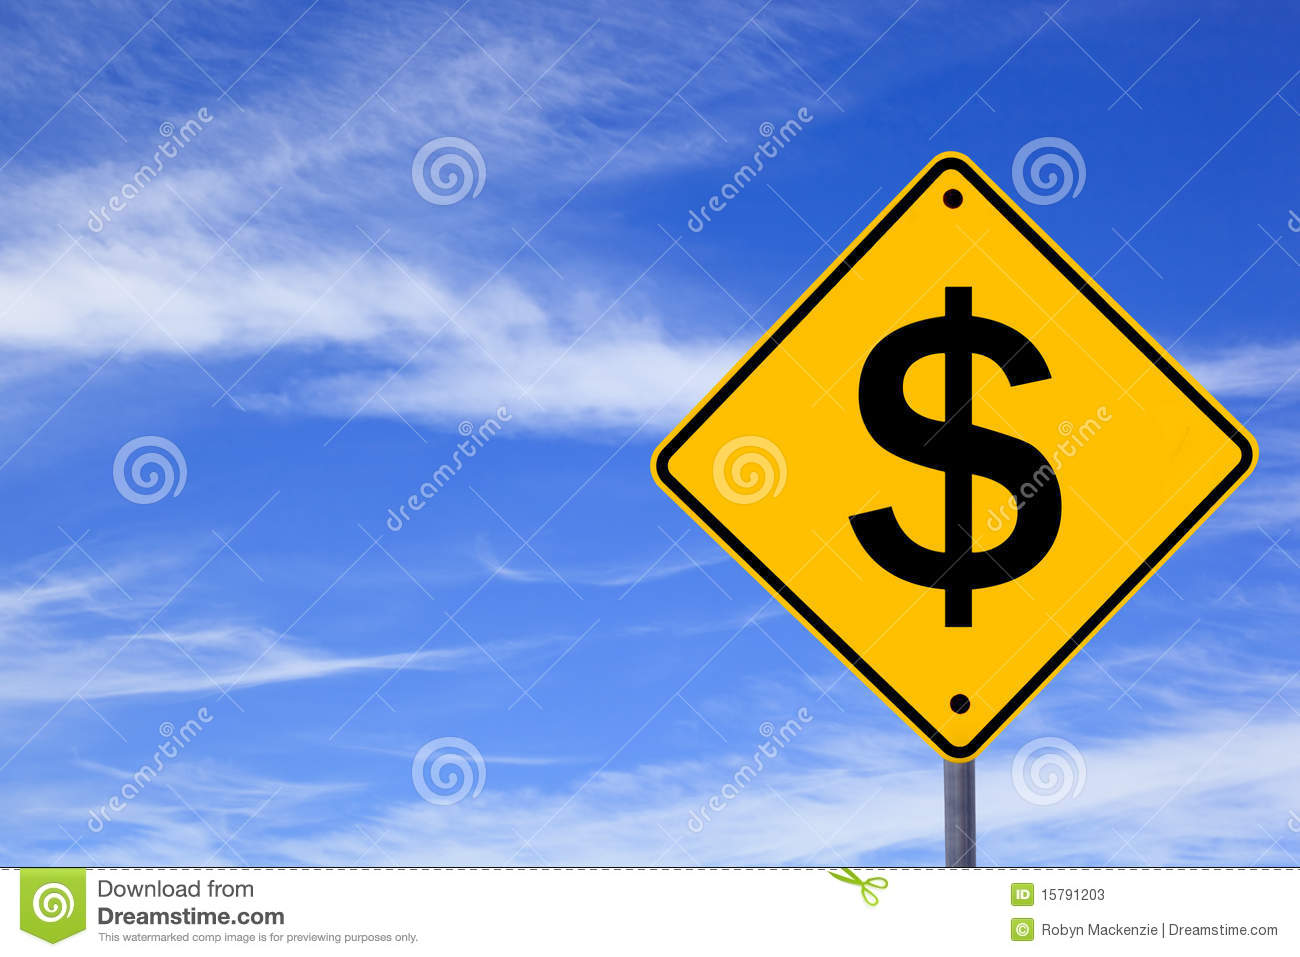 Download Dollar Sign stock image. Image of wispy, outdoors, sign - 15791203